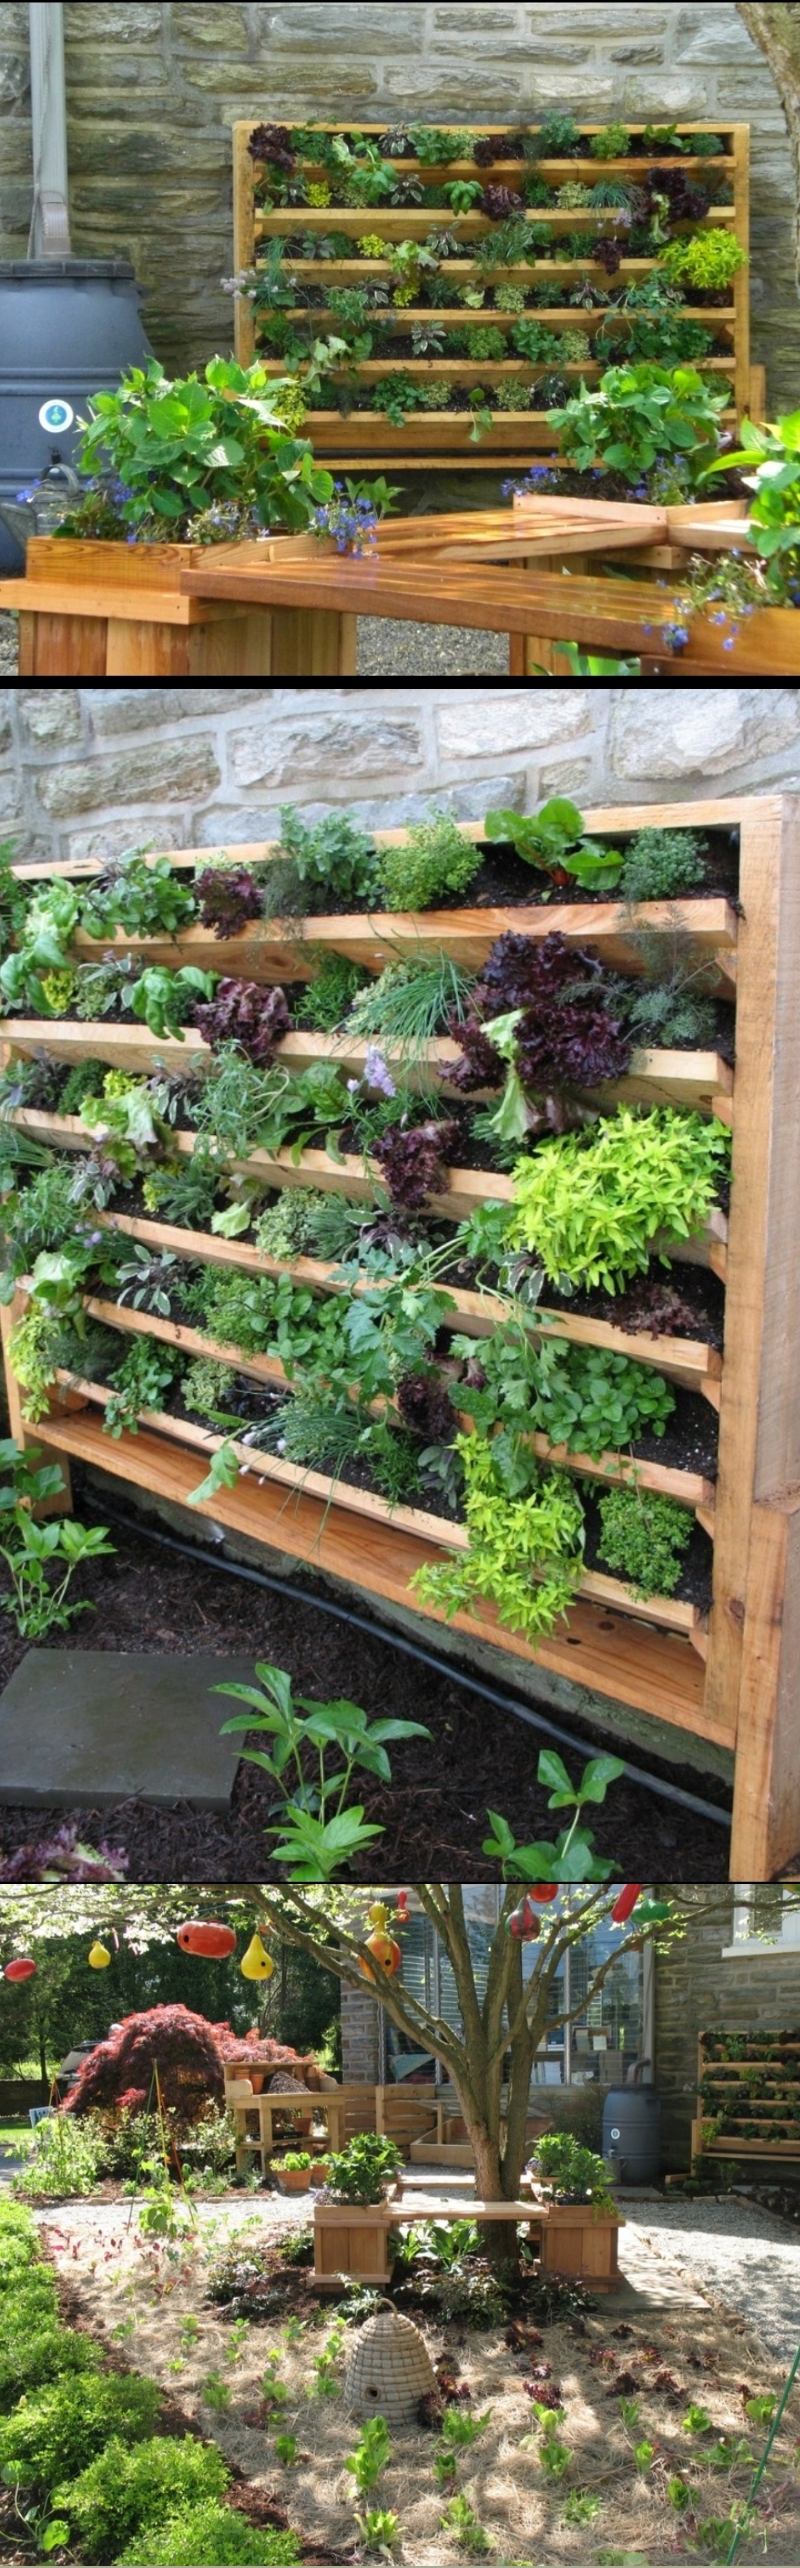 23 Herb Garden Ideas A Guide On How To Grow Herbs 10 Easiest Herbs To Grow